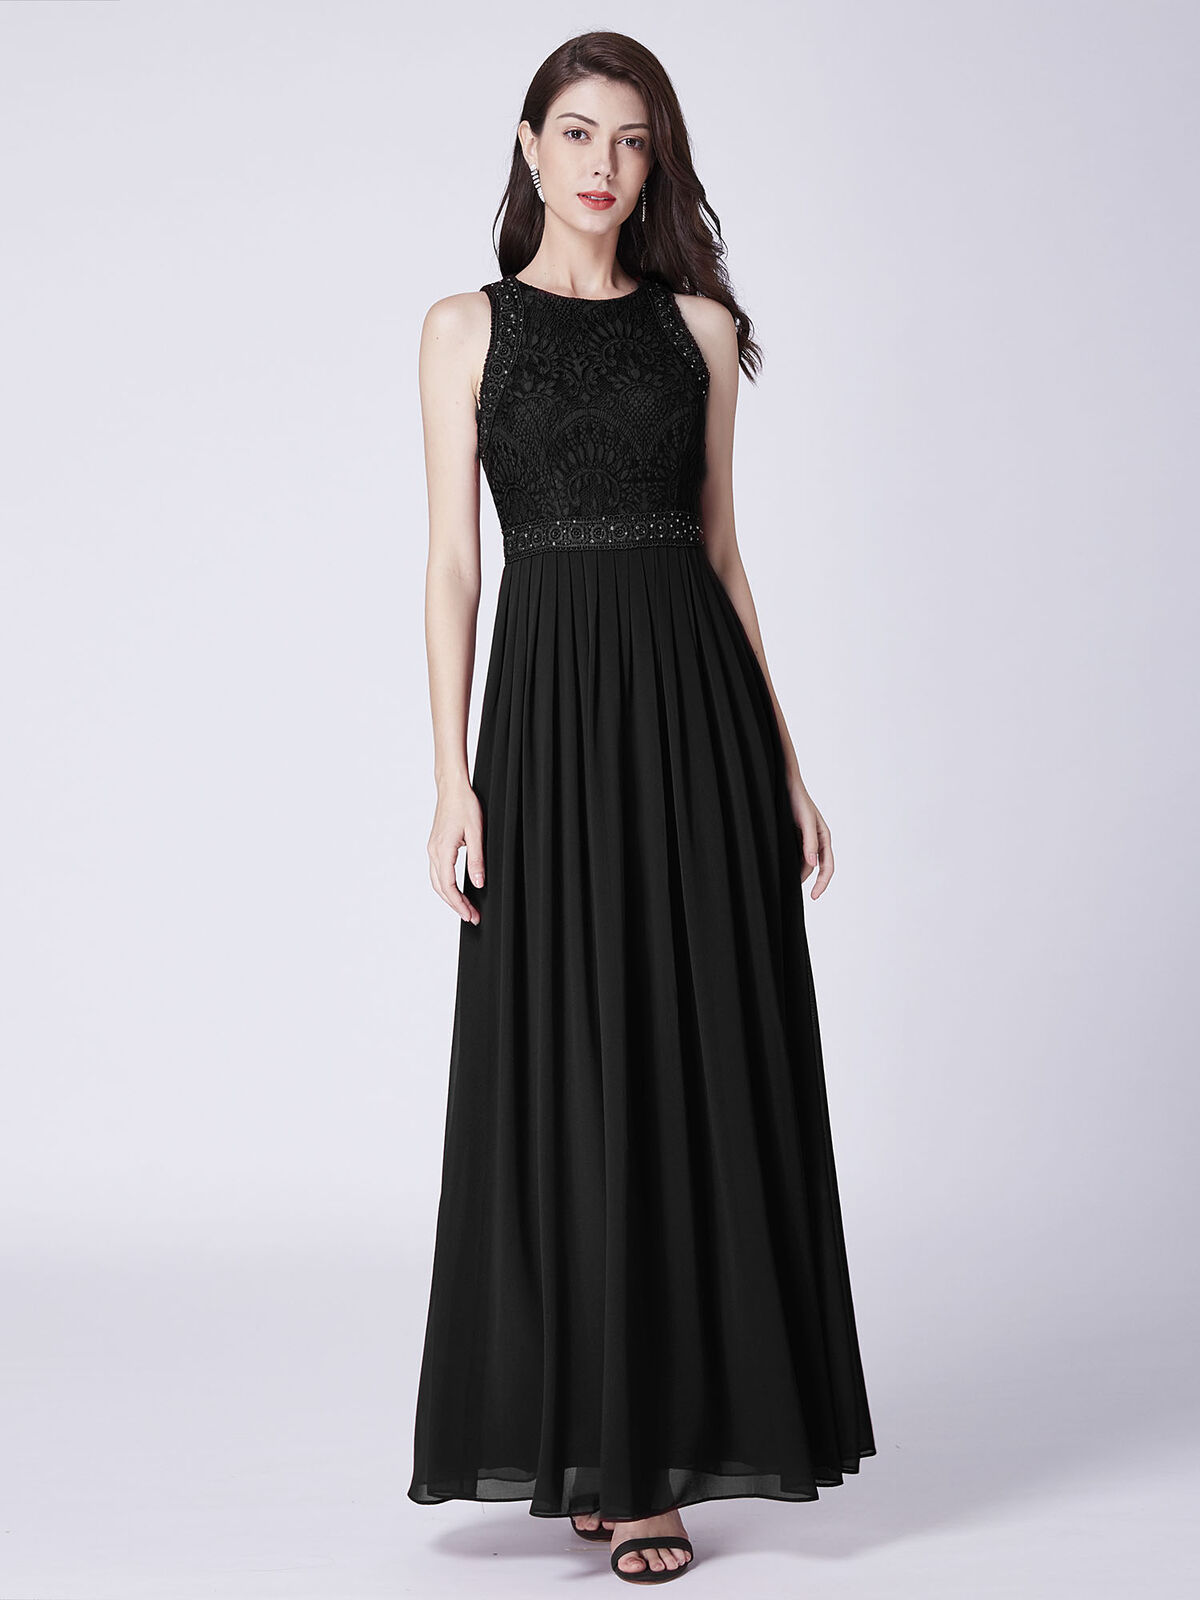 UK Ever-Pretty Womans Lace Long Evening Dresses Sleeveless Prom Party Dress 7391